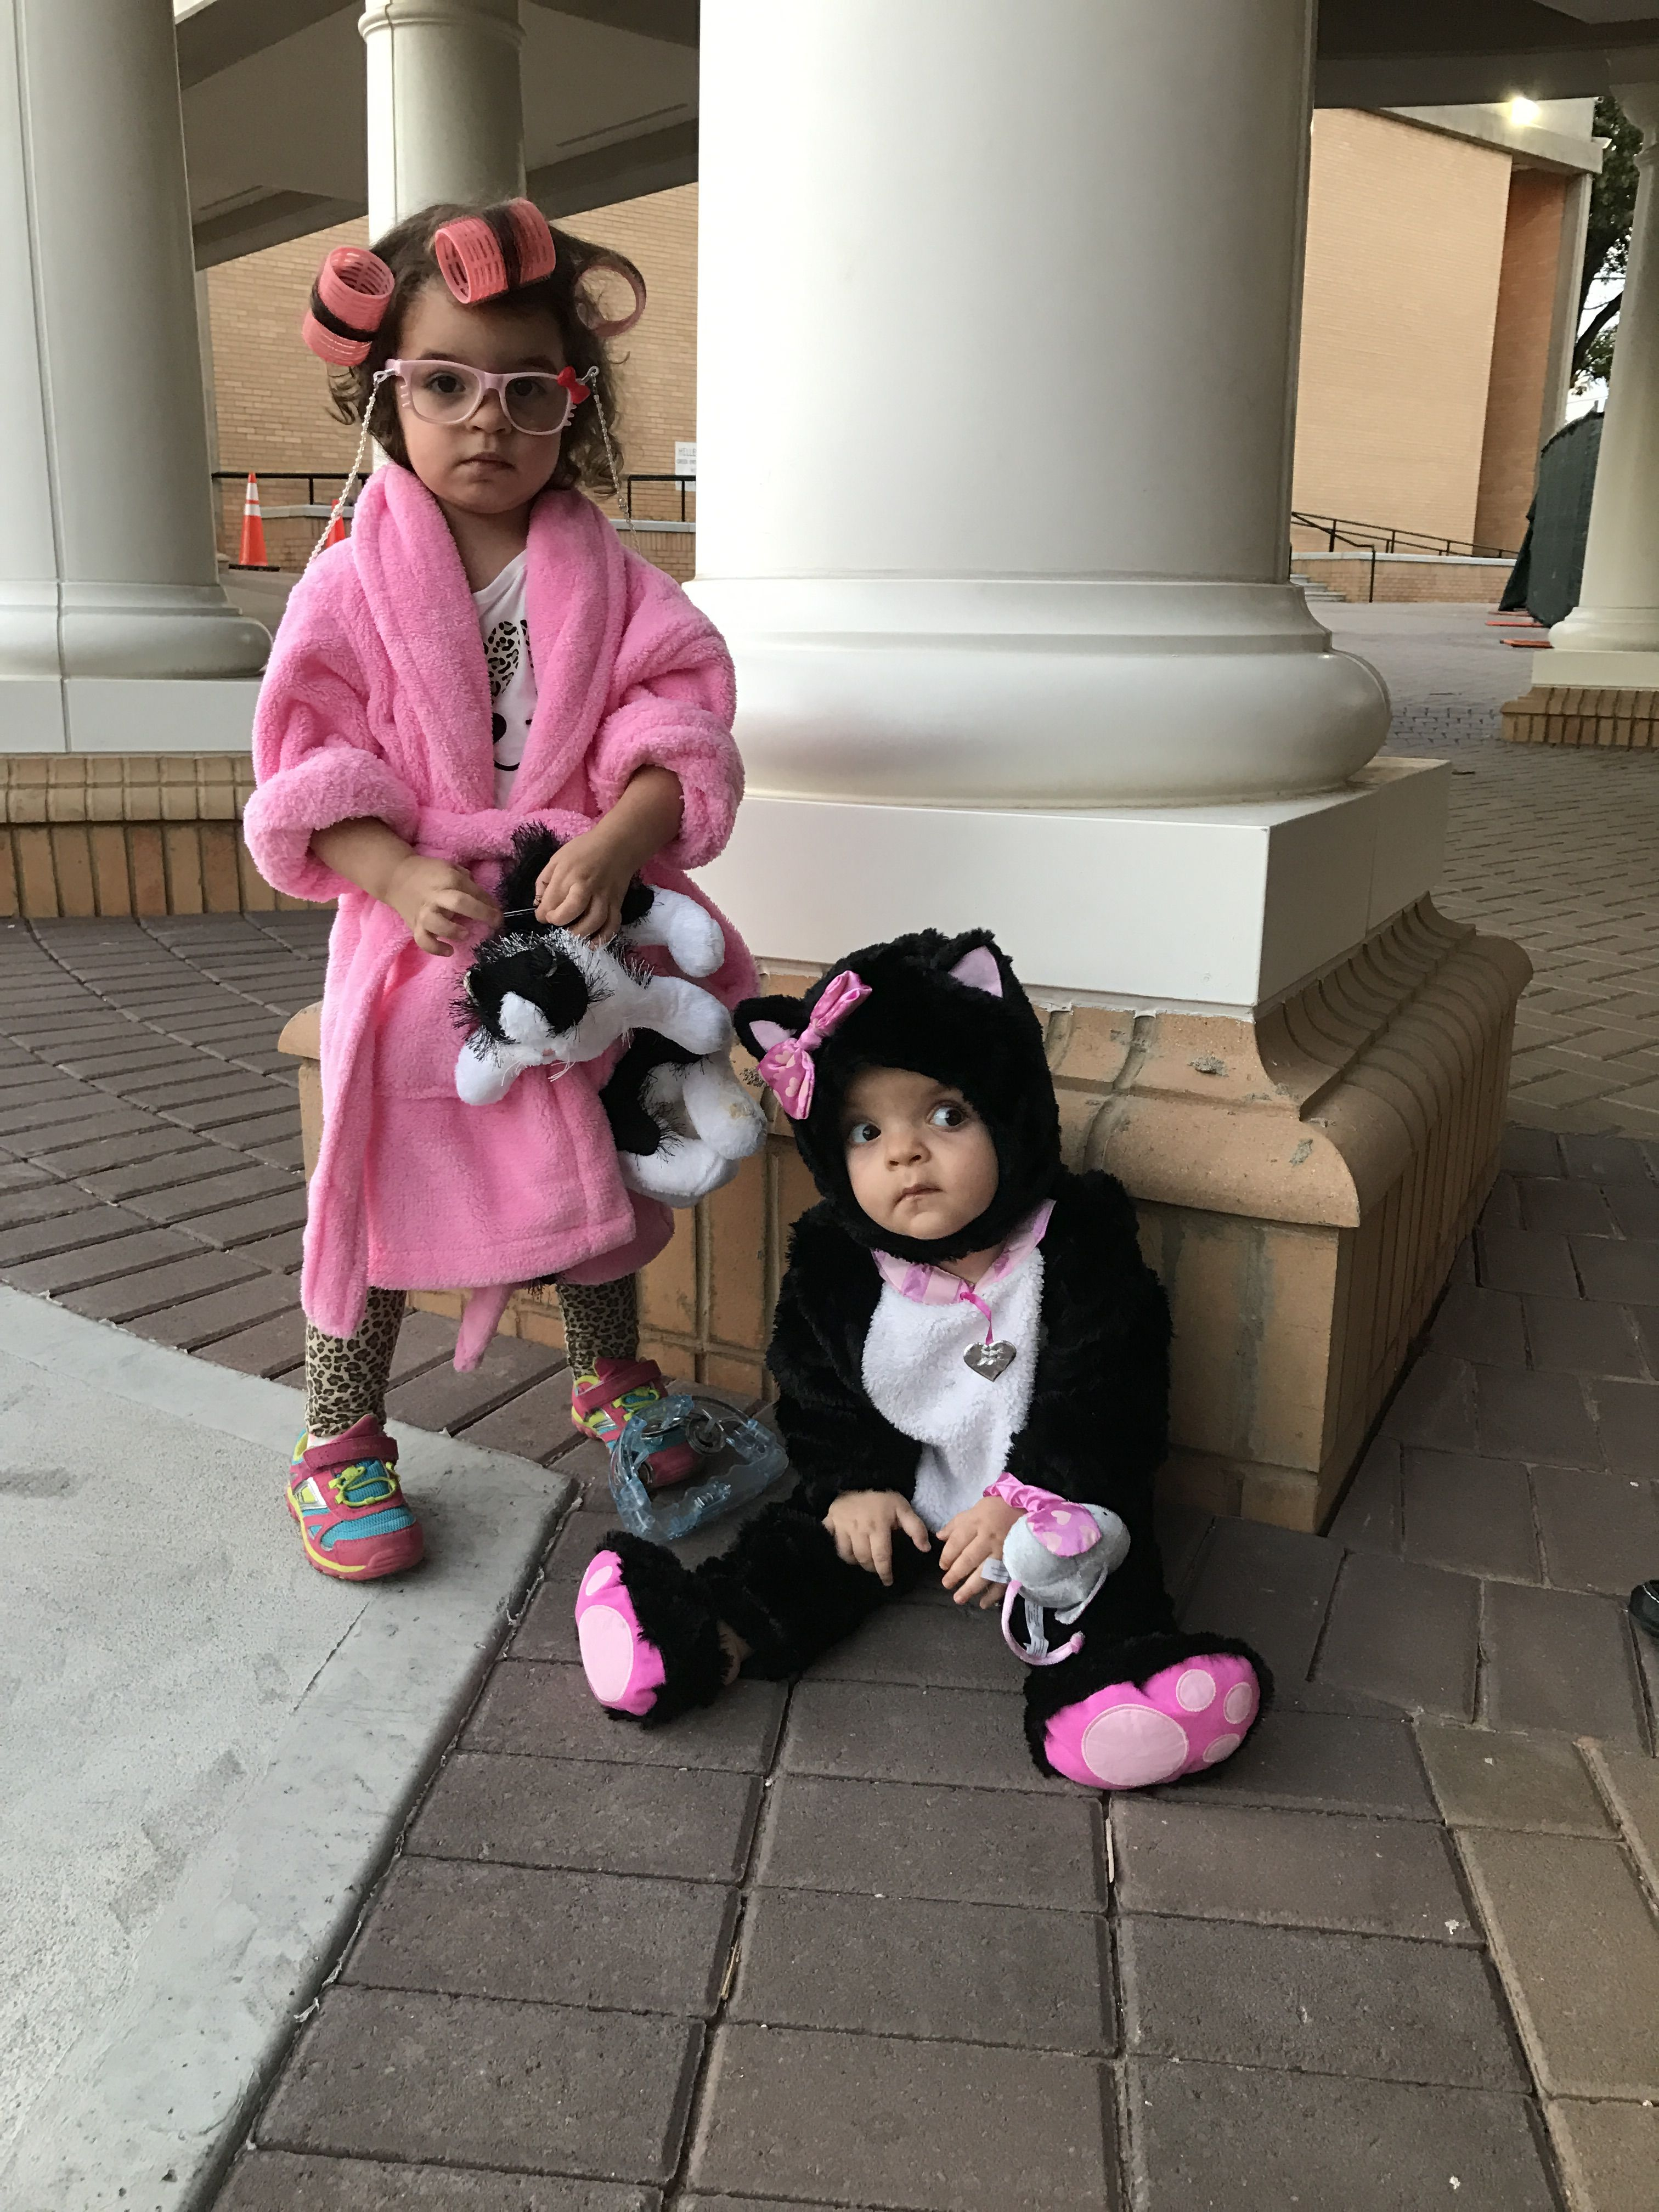 Crazy Cat Lady Toddler Halloween Costume And Her Baby Sister As A Kitten Si Halloween Costumes For Sisters Costumes For Sisters Halloween Costume Toddler Girl